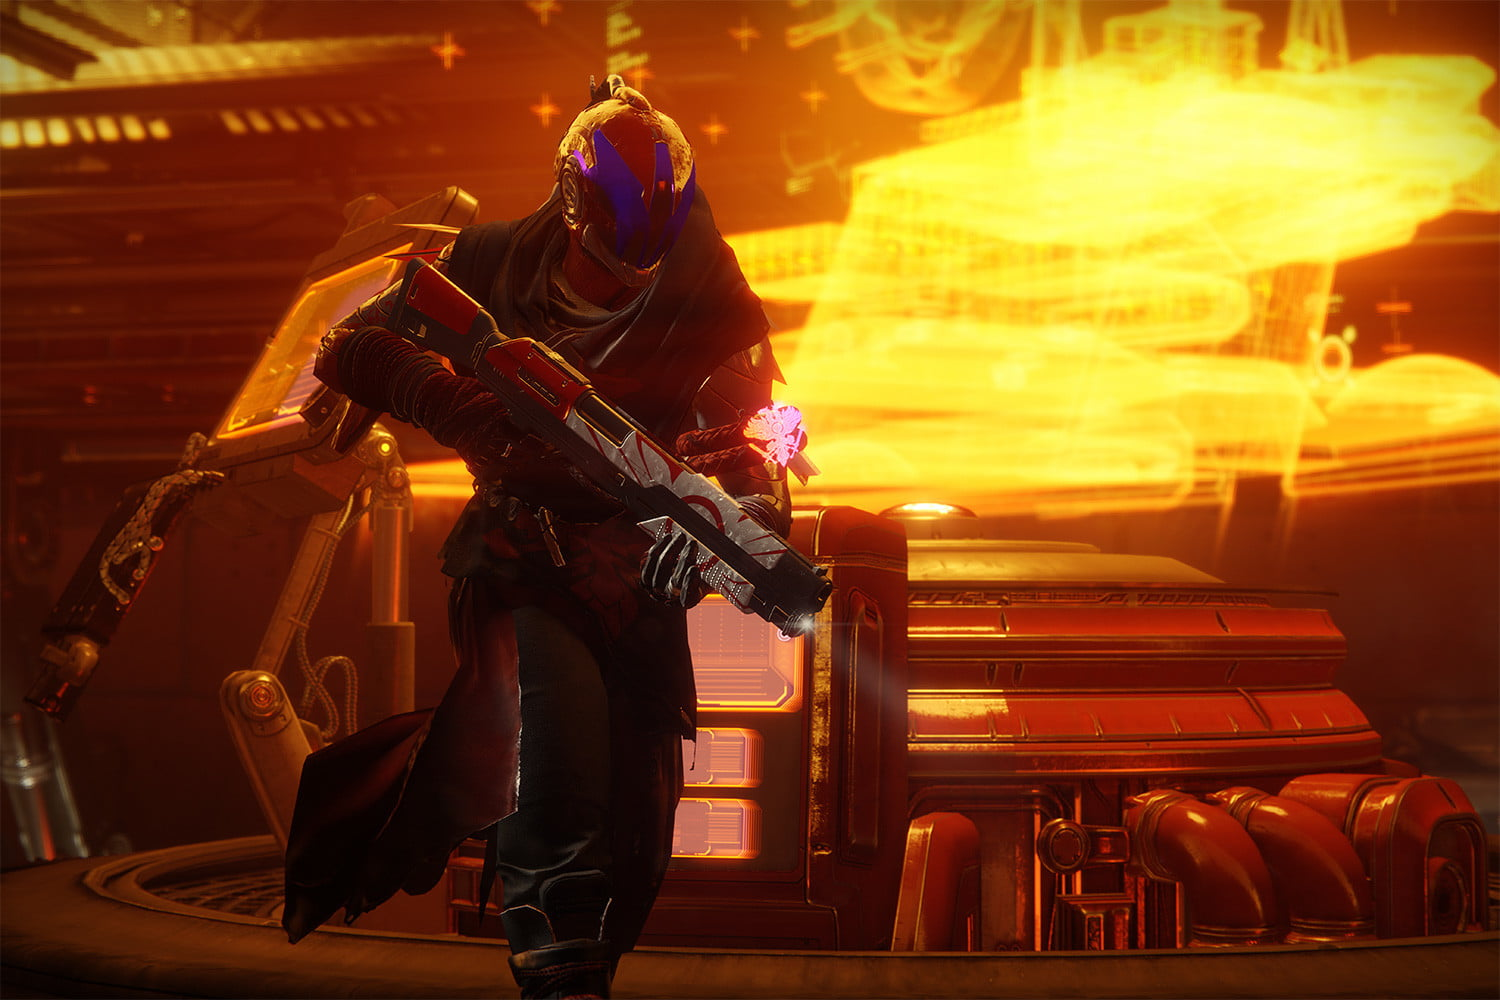 Destiny 2' Beginner's Guide | How to Get the Most Out of